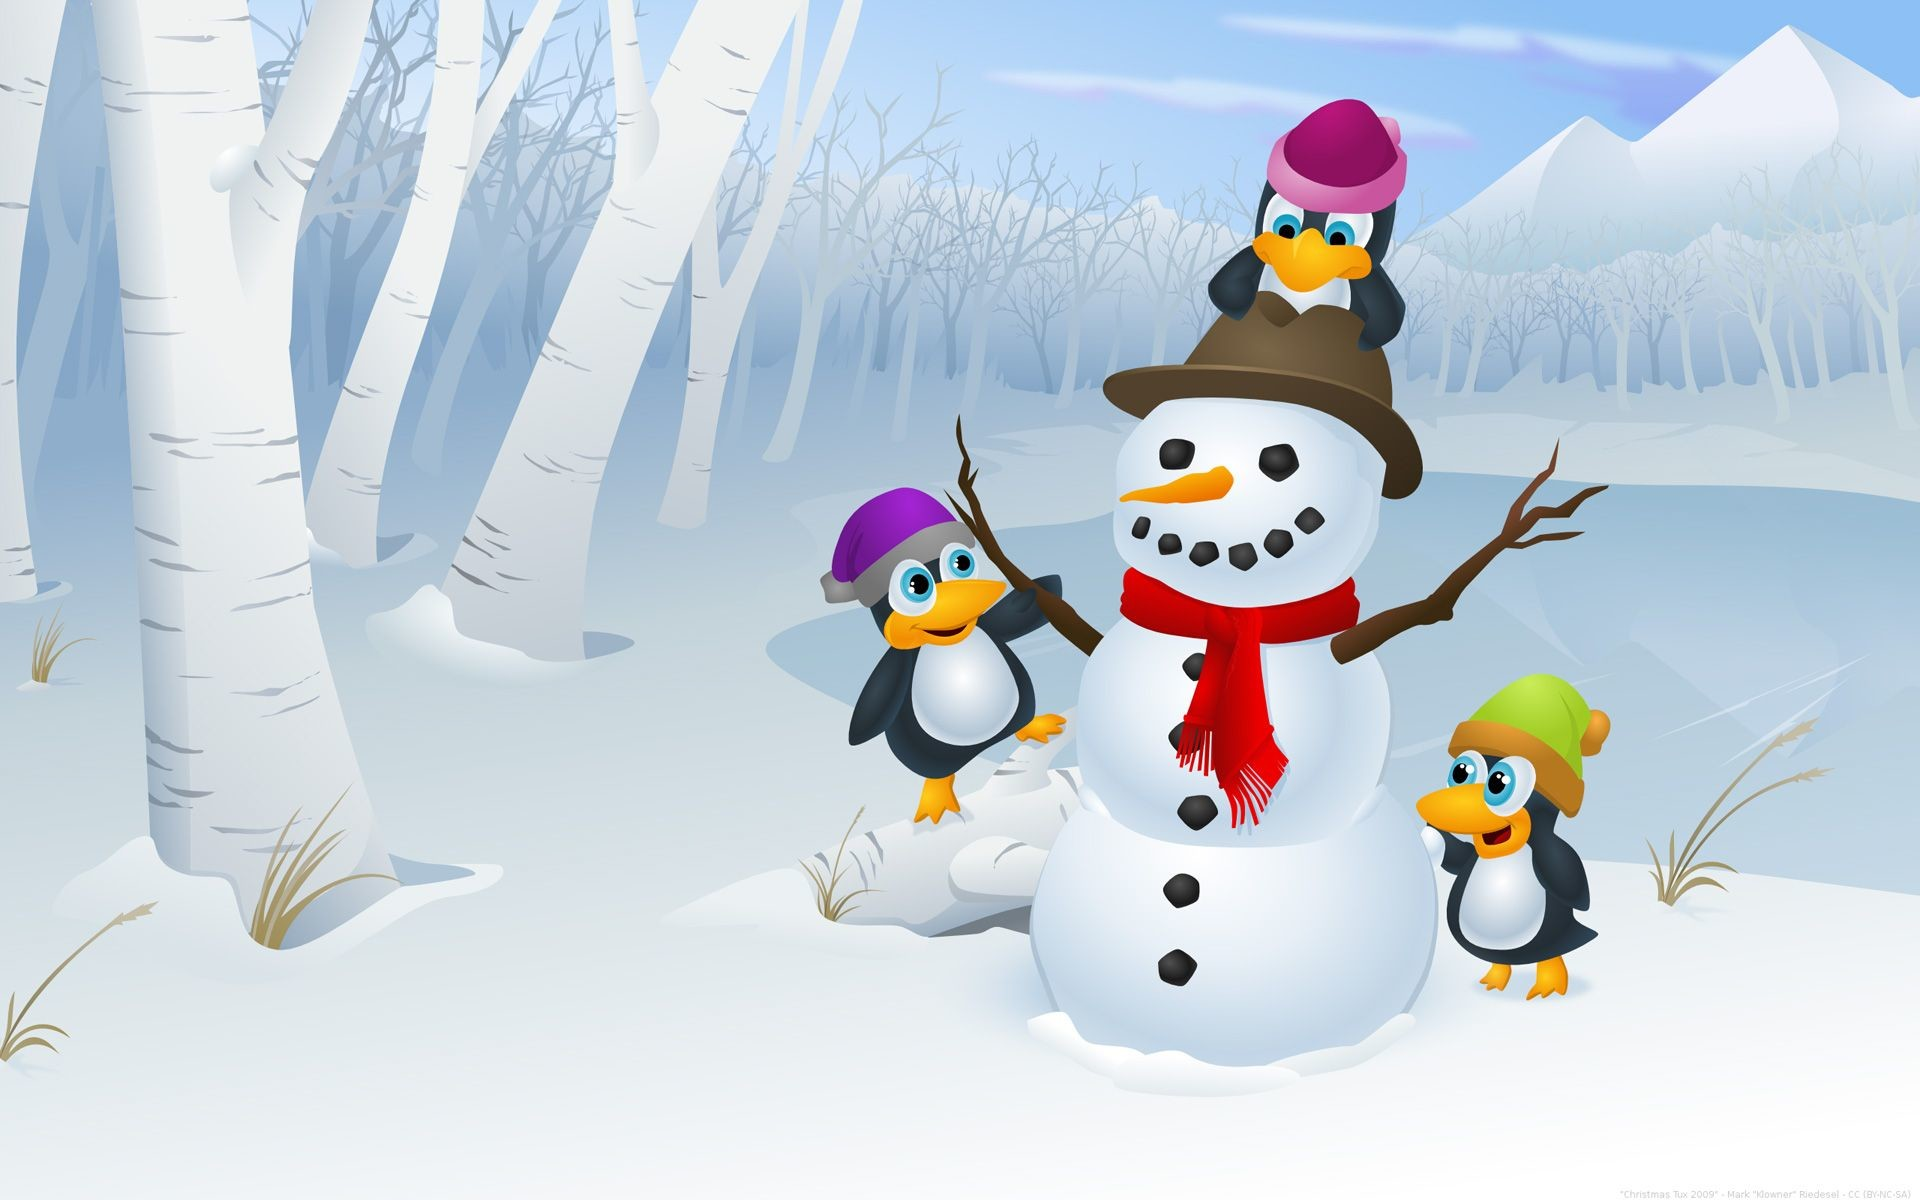 Res: 1920x1200, christmas jpeg pictures | 50 Widescreen Christmas Wallpapers to Have Logic  of Count Down Timer .